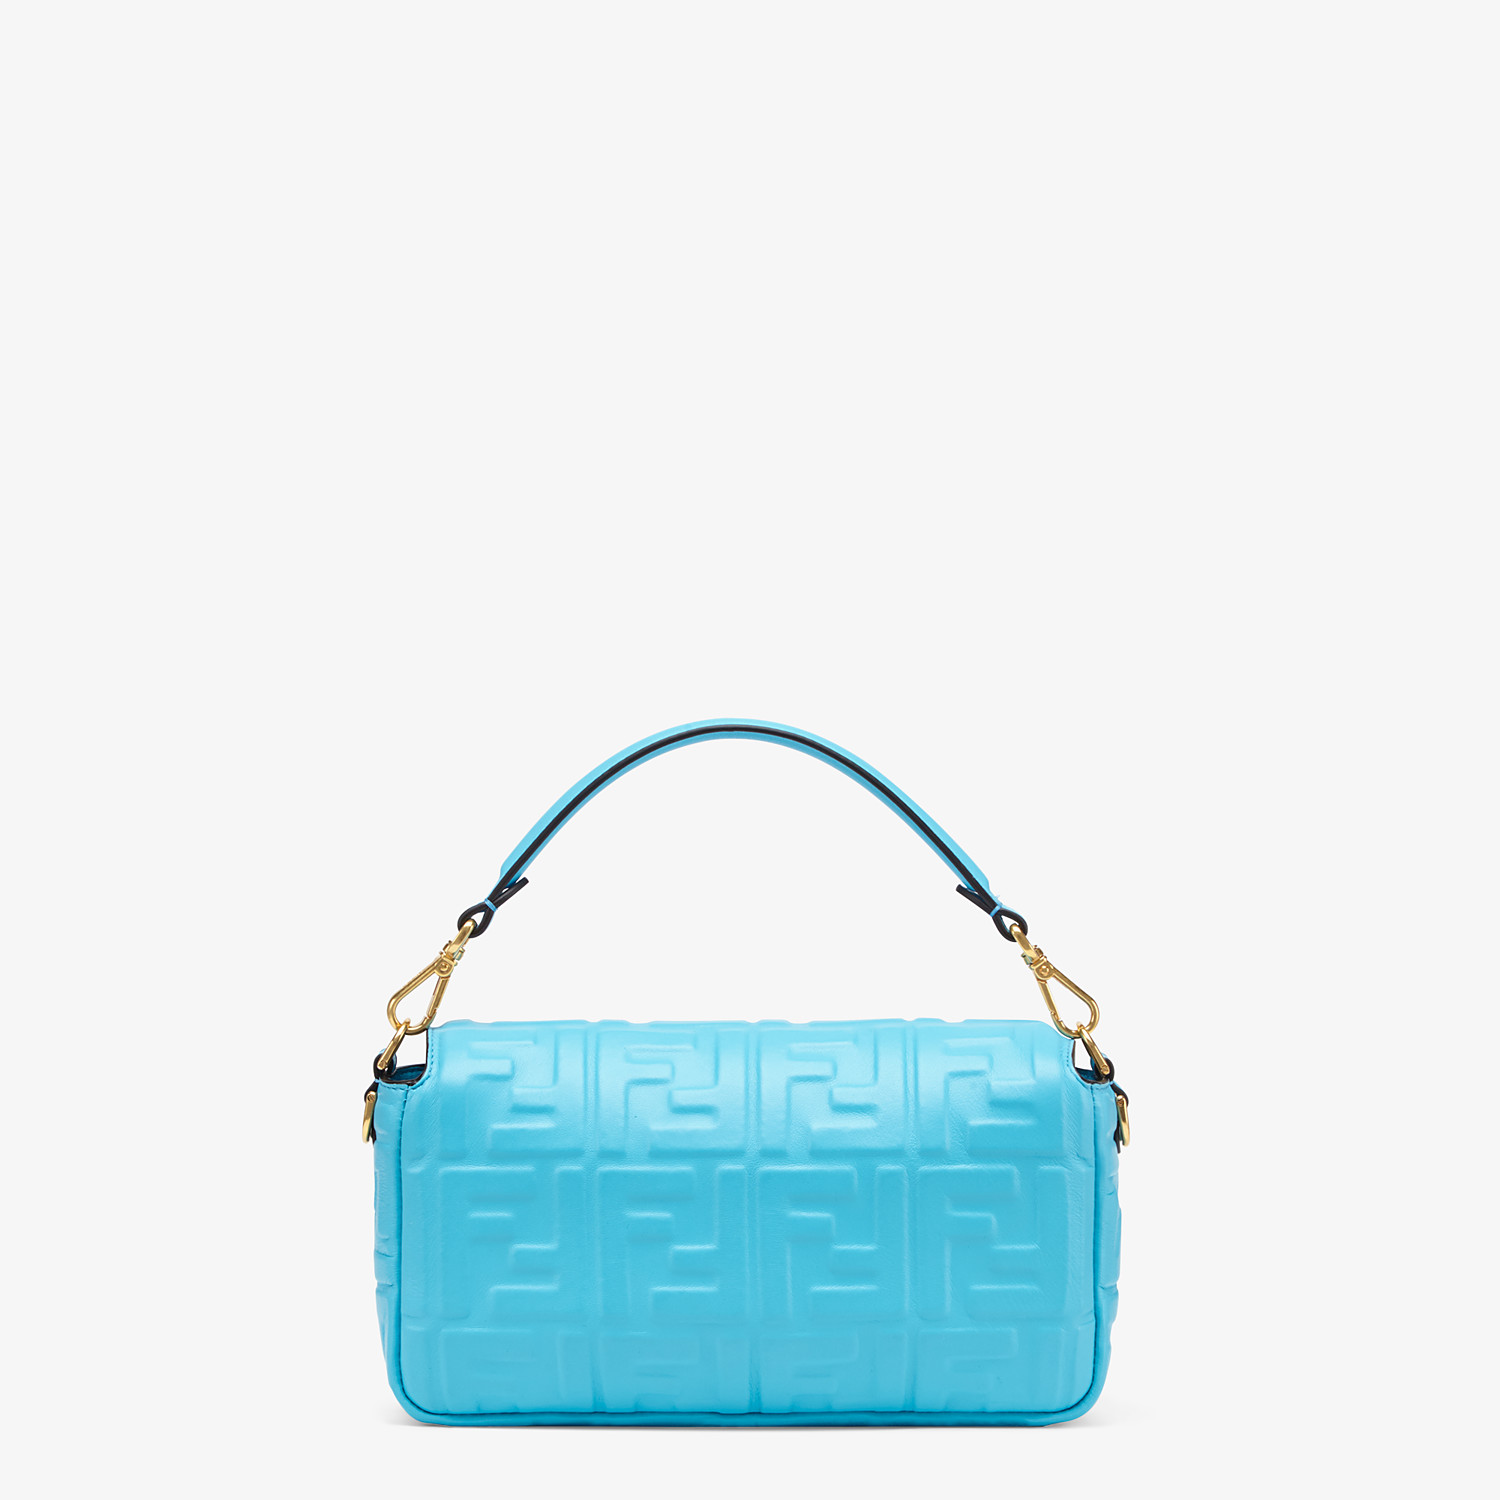 FENDI BAGUETTE - Light blue FF Signature nappa leather bag - view 4 detail